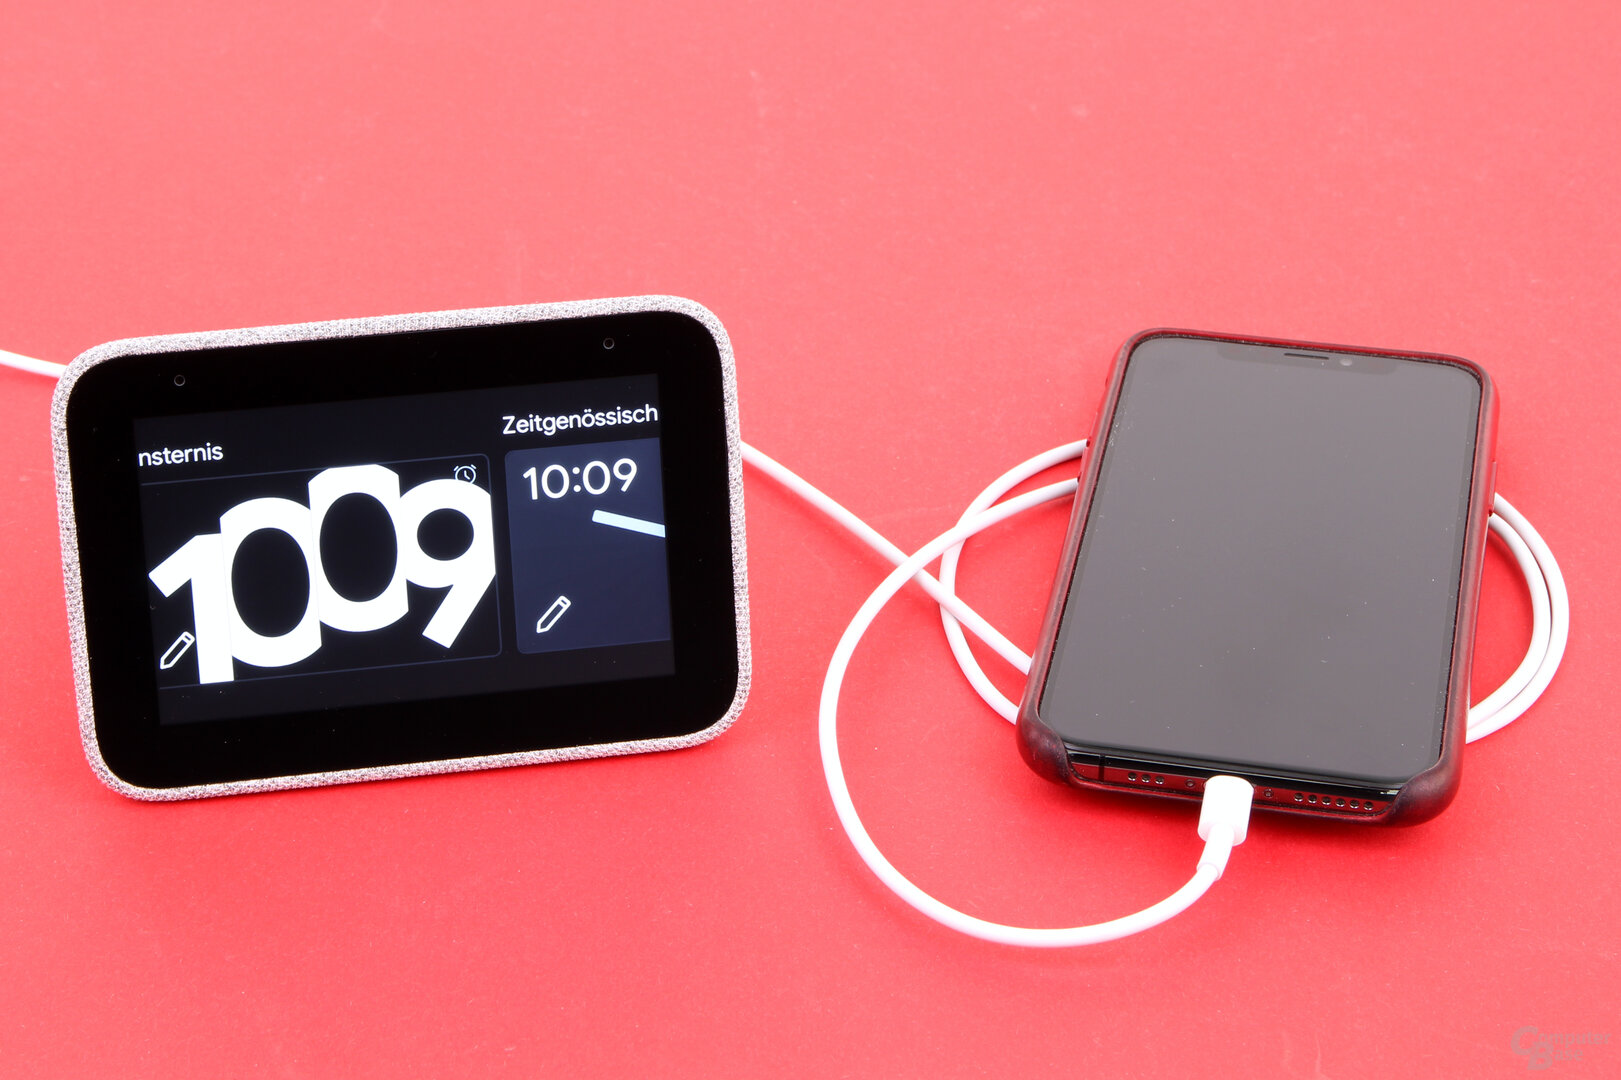 Lenovo Smart Clock: Laden des Smartphones per USB